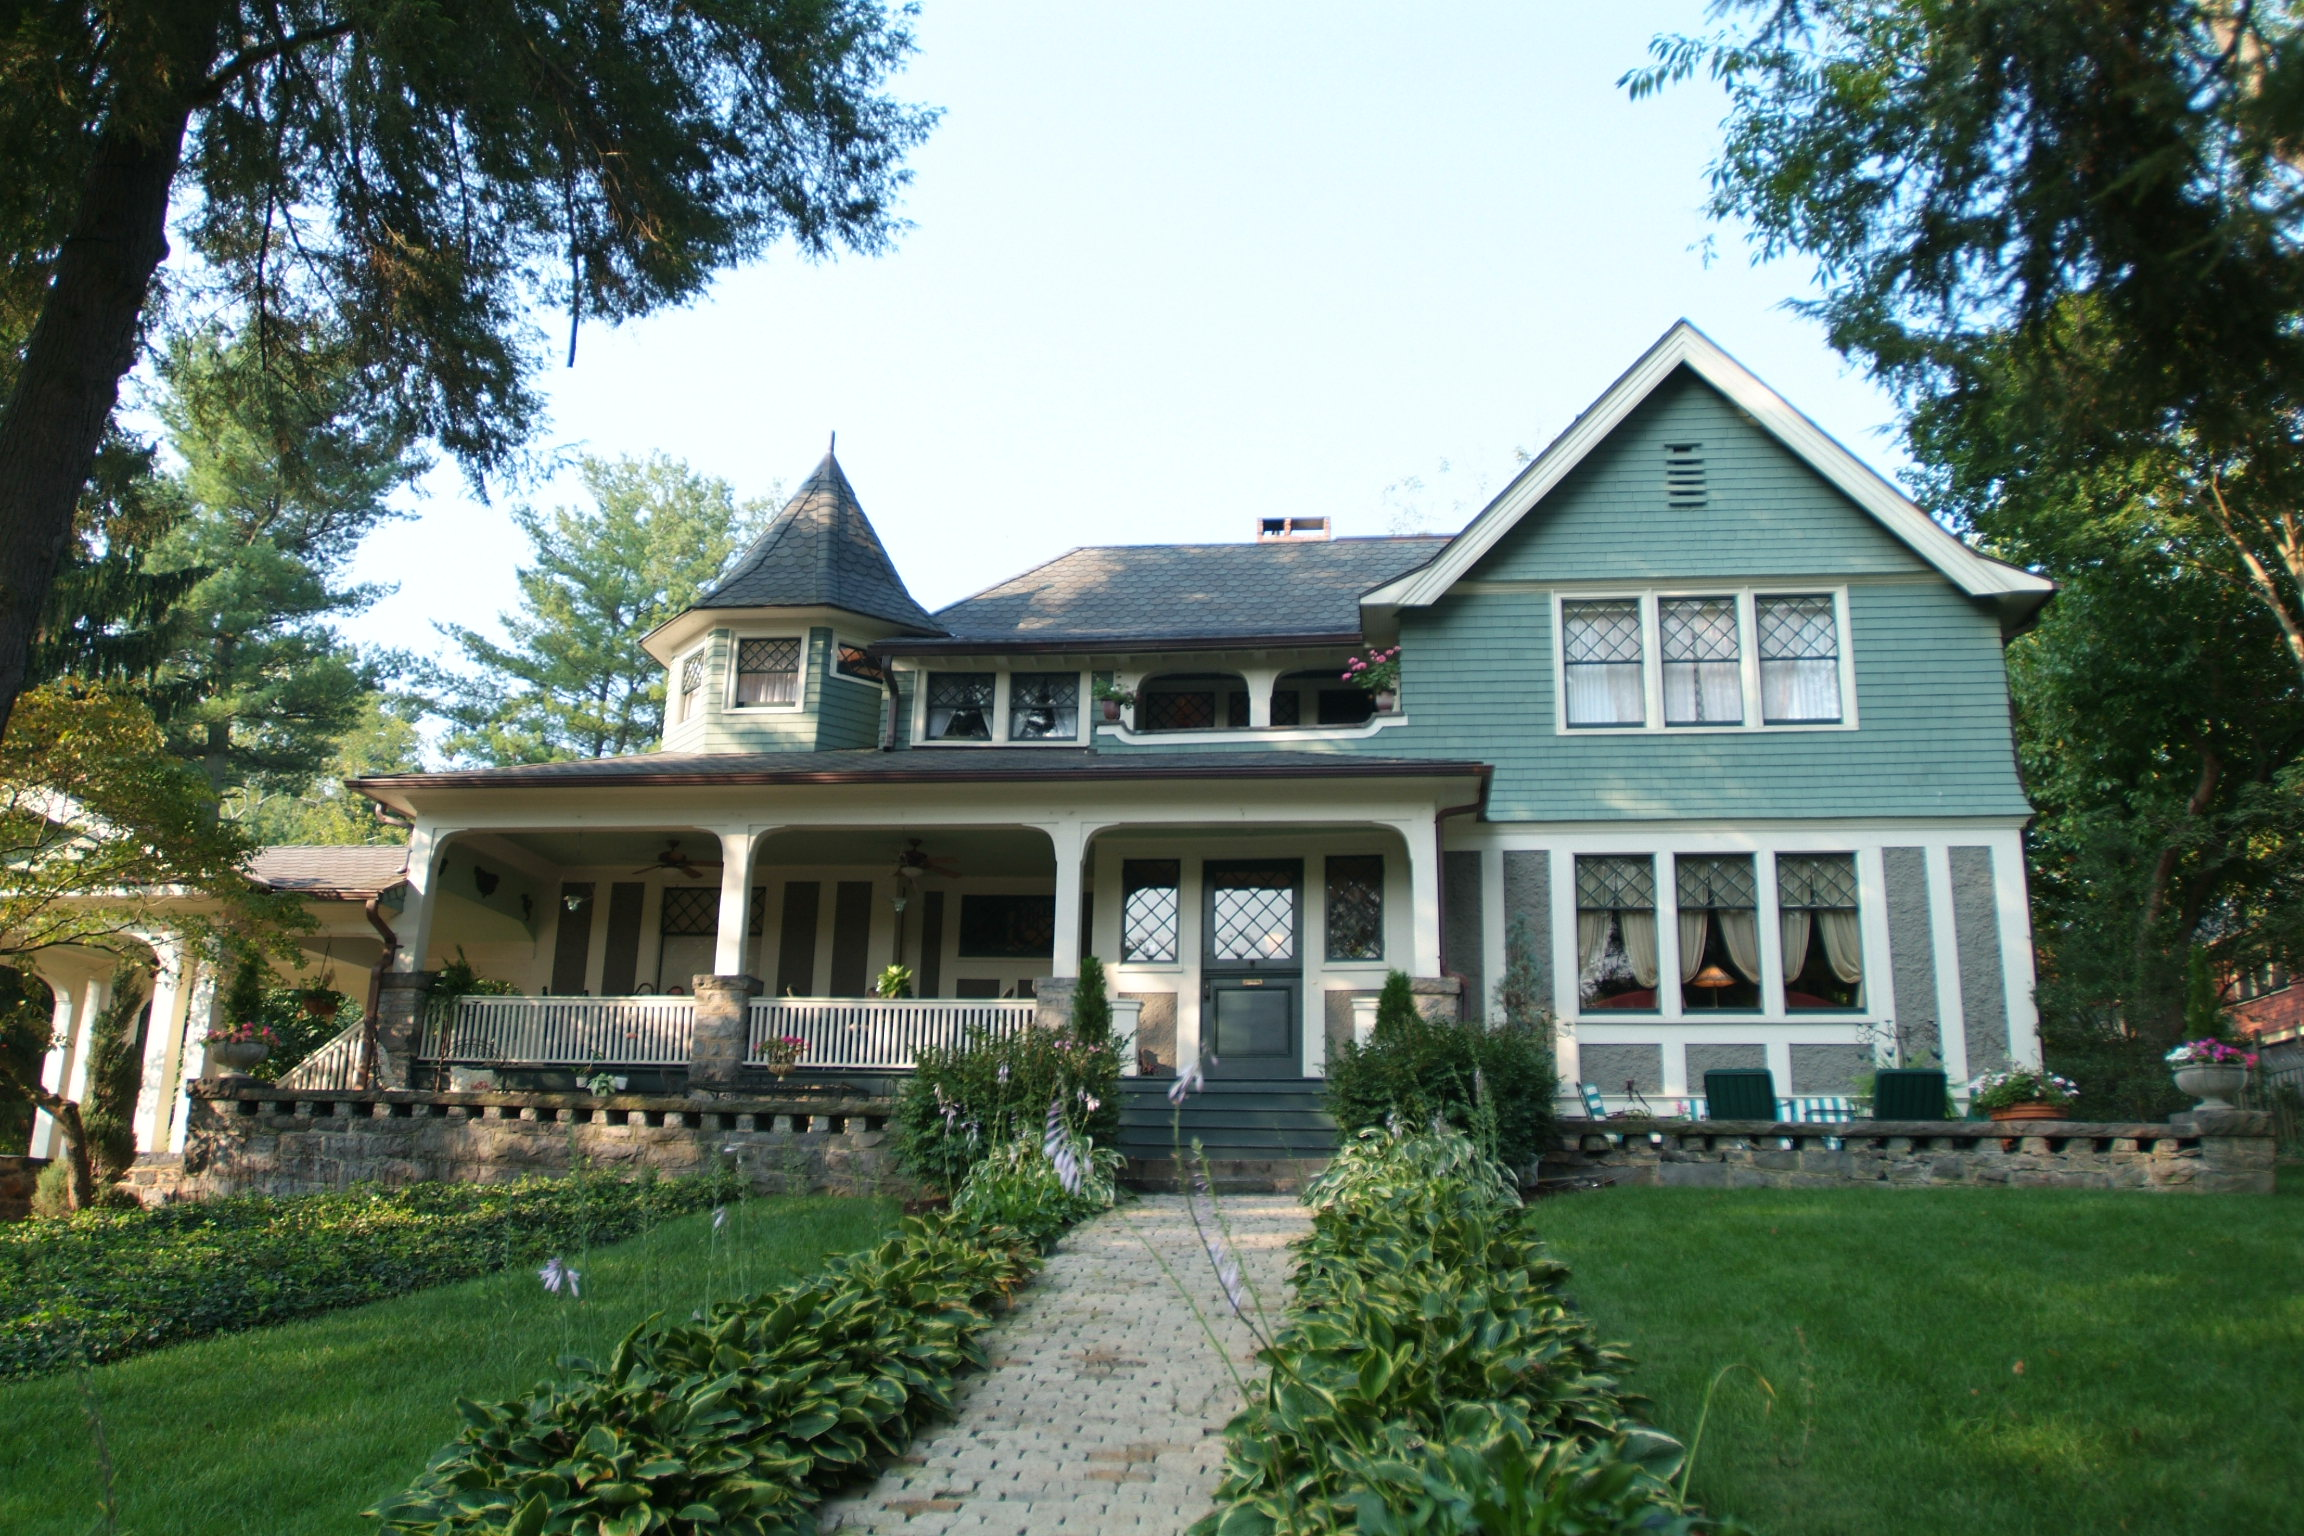 A large lawn in front of a house at The Black Walnut Bed & Breakfast Inn.